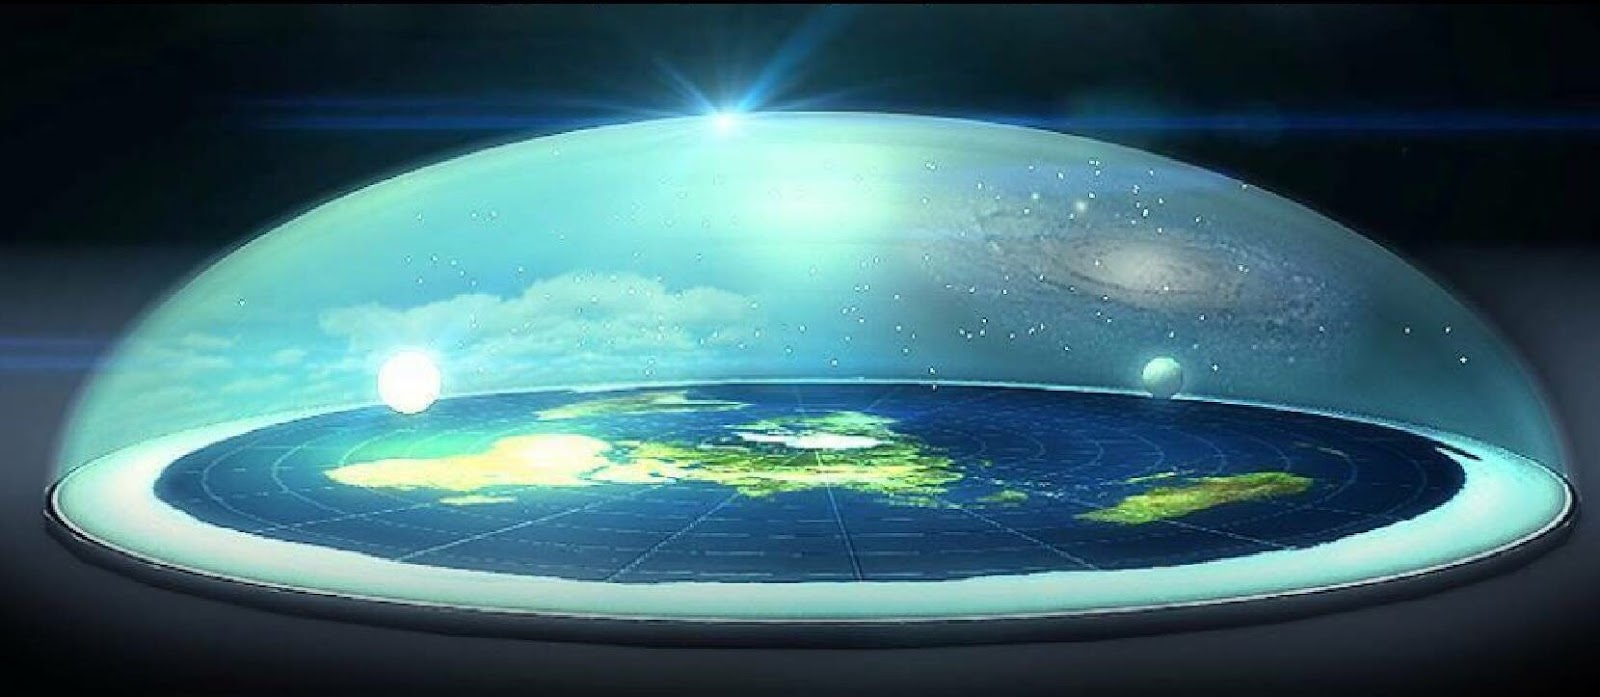 flat-earth.jpeg